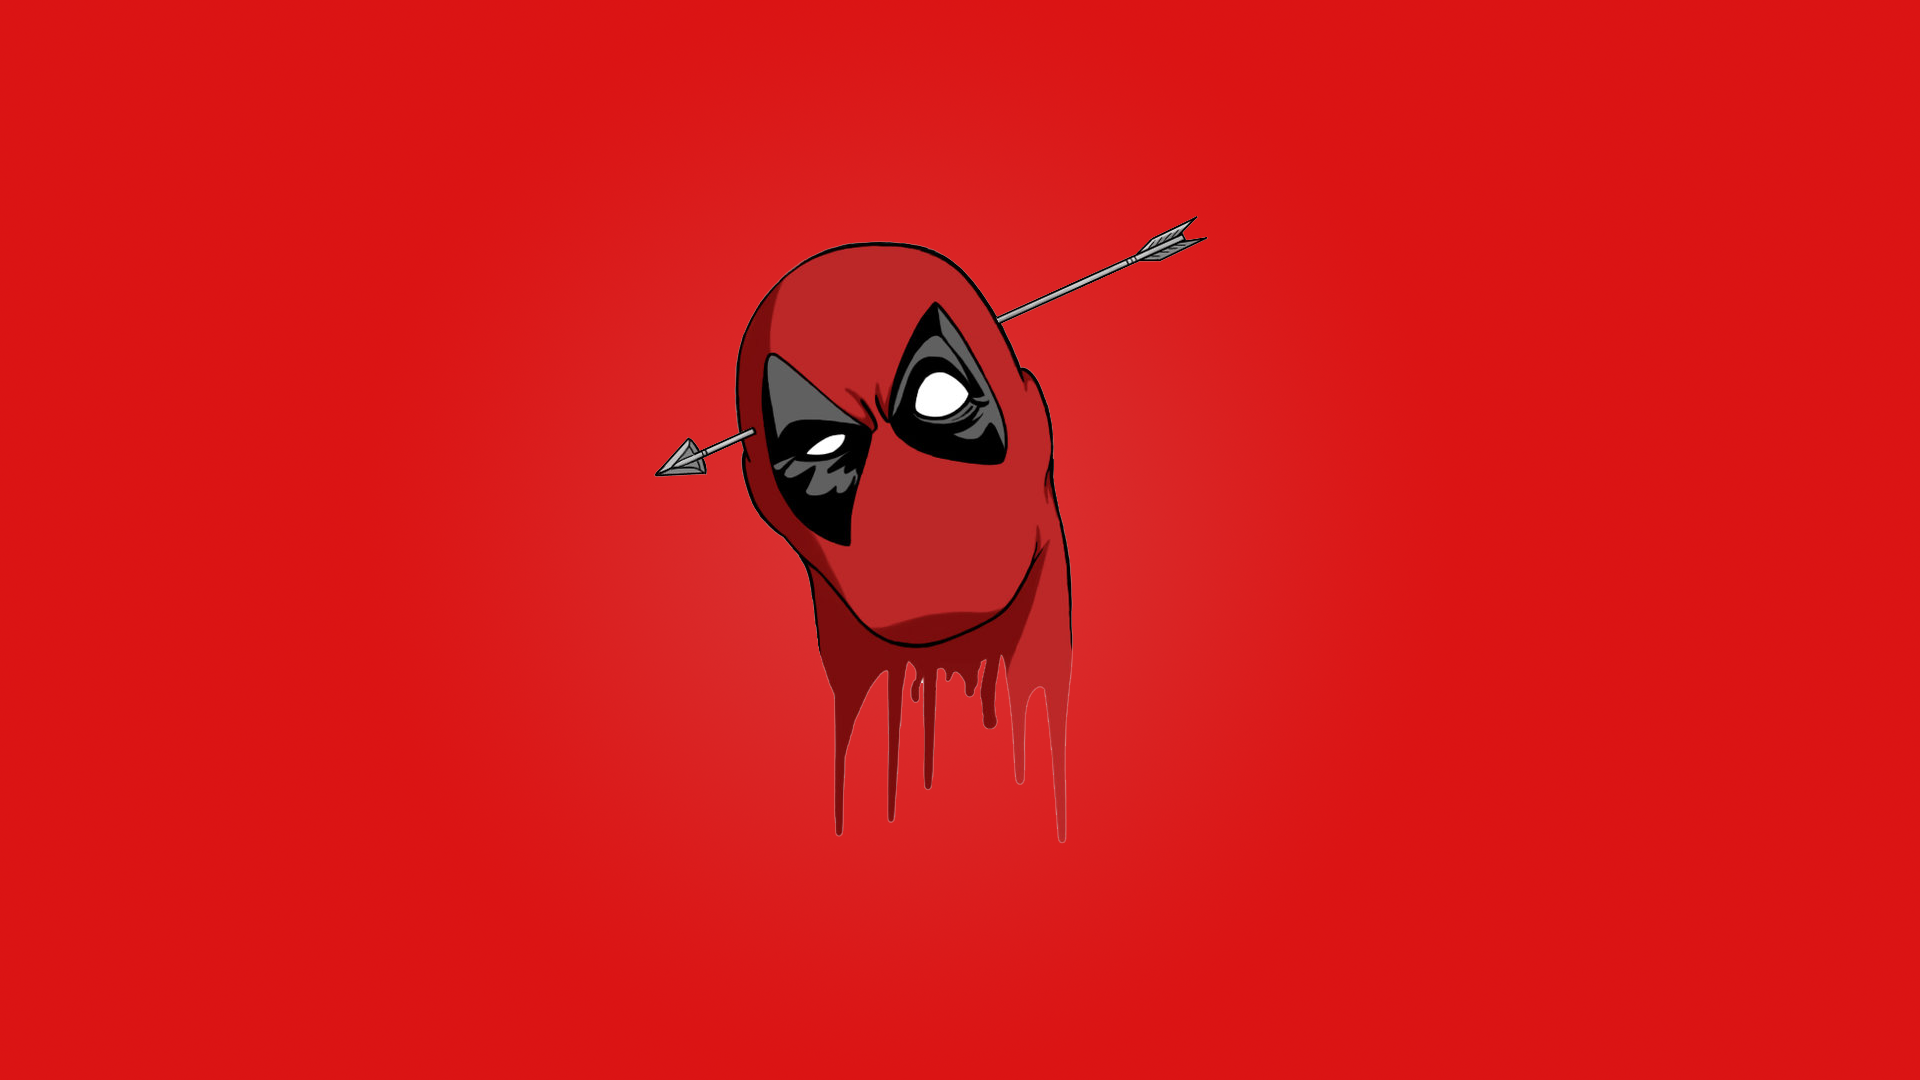 Deadpool digital art hd artist 4k wallpapers images deadpool digital art voltagebd Choice Image